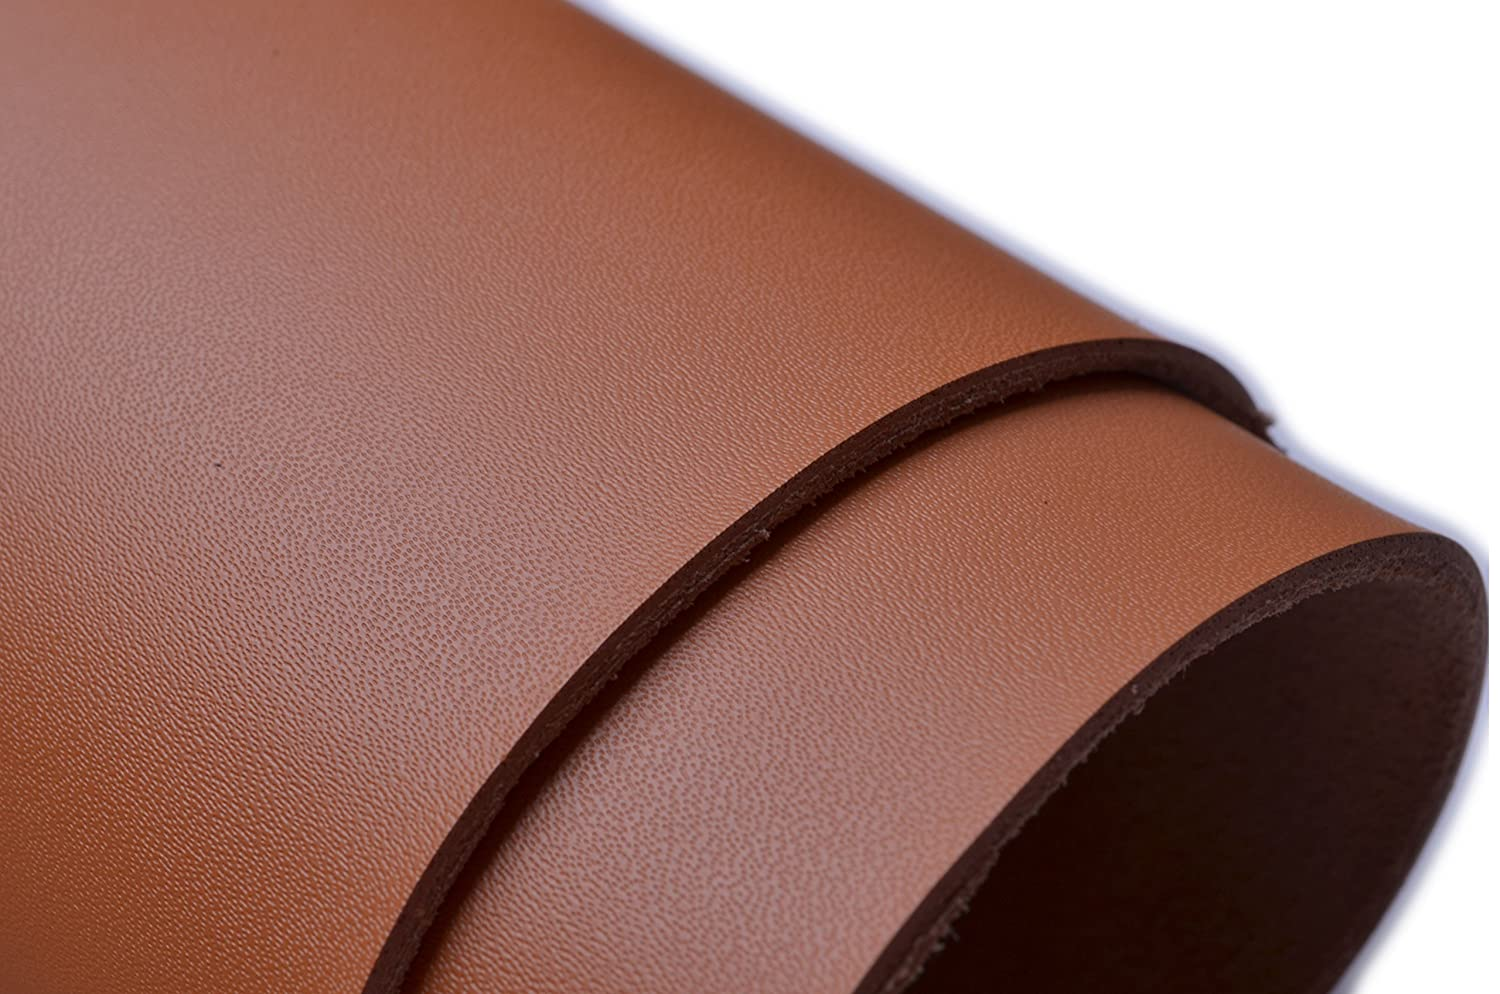 W WENTO 1.8-2mm Thick Solid Genuine Leather Finished,cow split leather,Cowhide leather,split hide leather 2 Square Foot 12 x 24 , Black